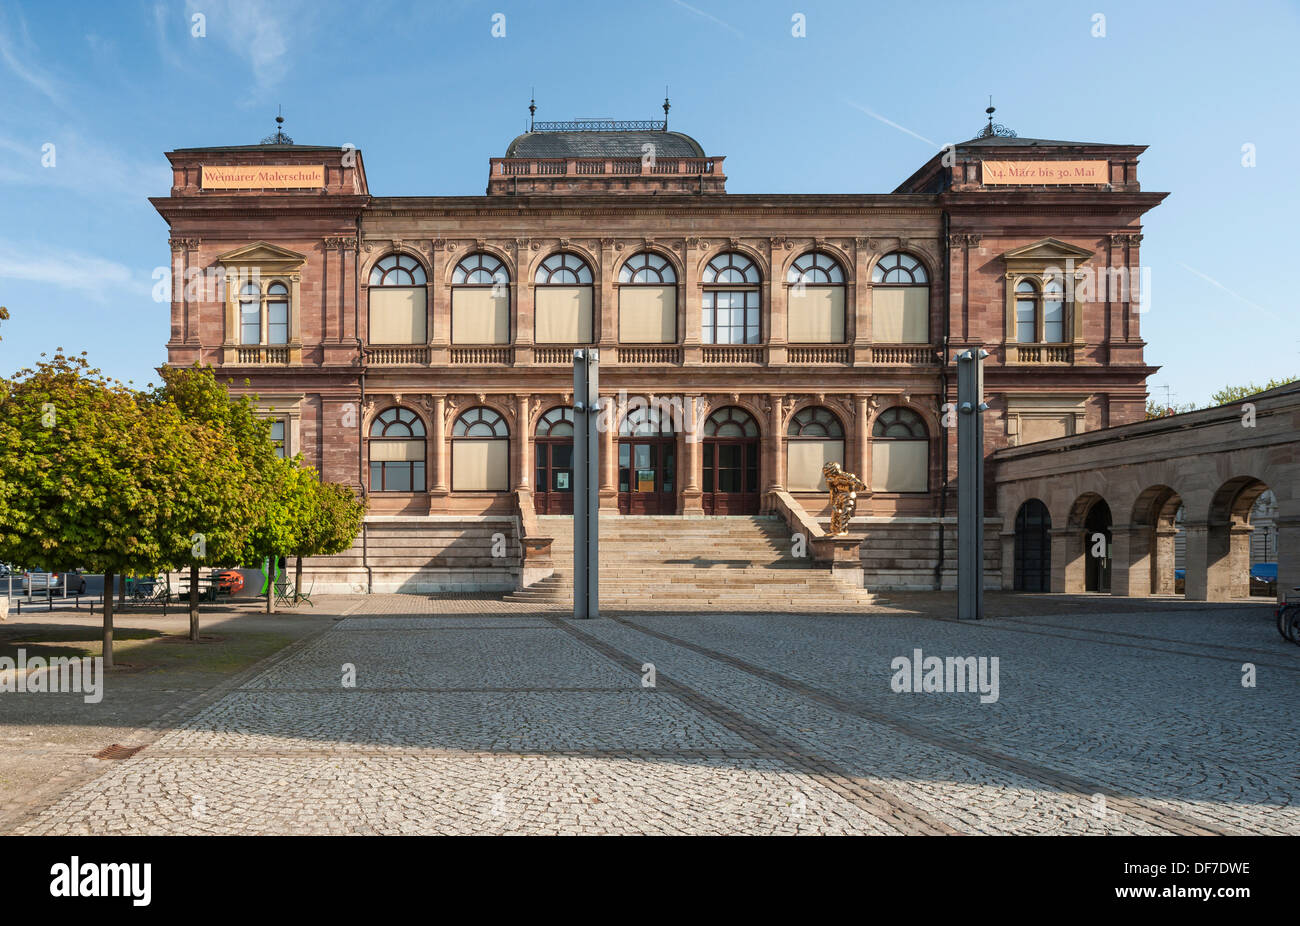 New Museum, 1869, building for art exhibitions, Weimar, Thuringia, Germany - Stock Image